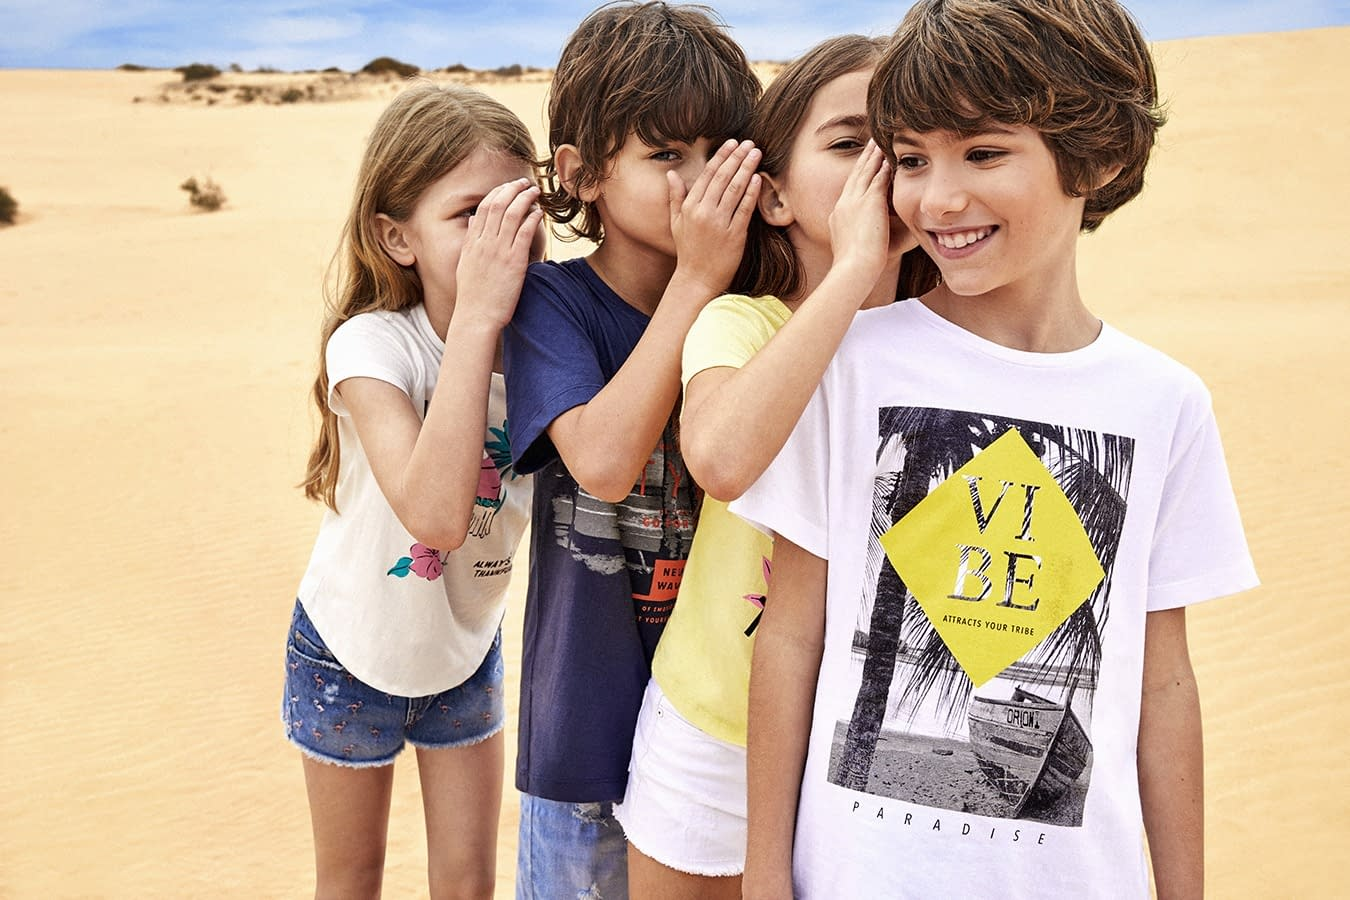 LEFTIES KIDS SS18 17 PHOTO BY ENRIC GALCERAN